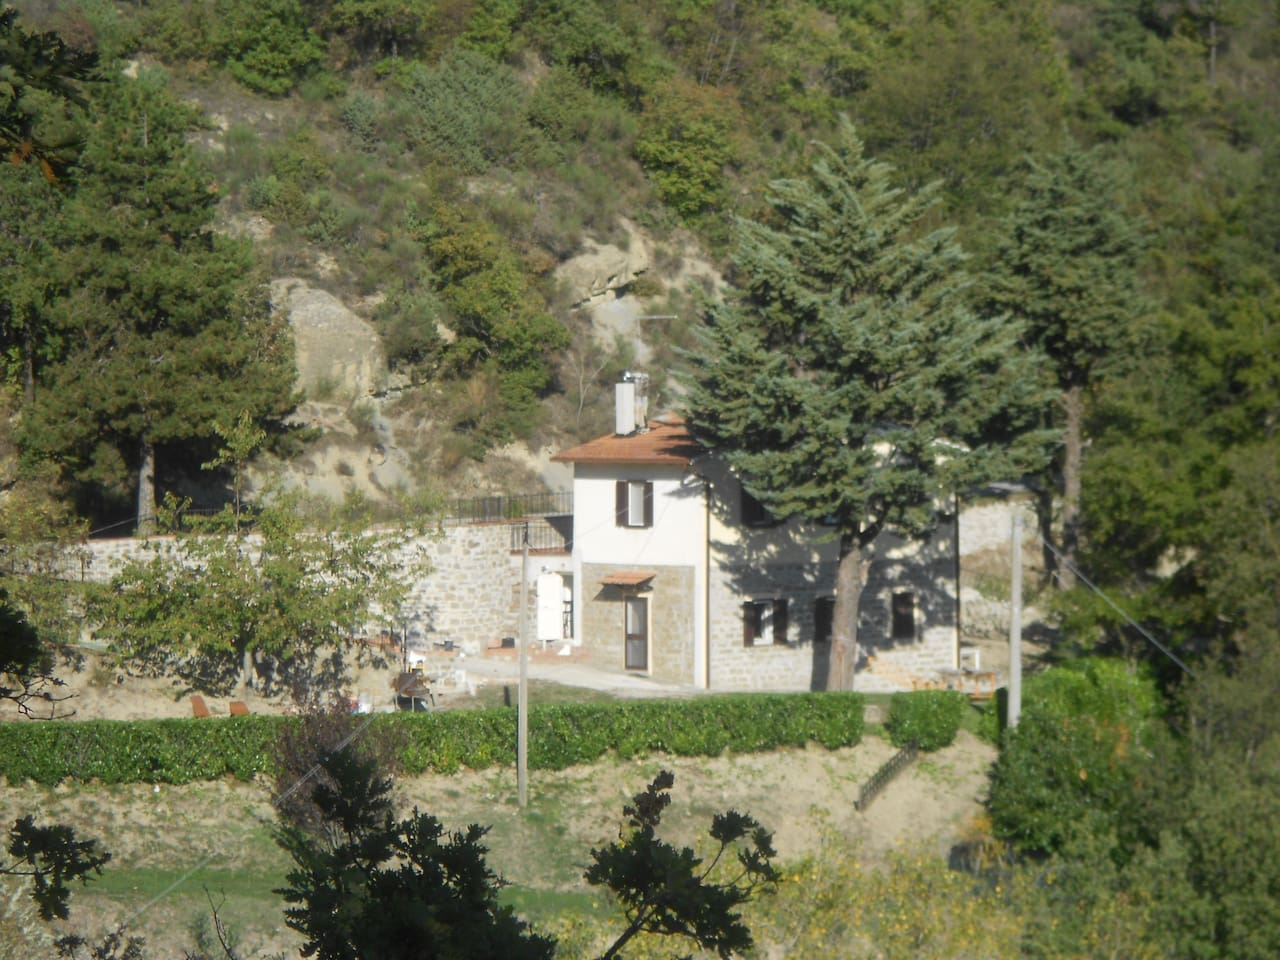 CASA BENGA IN THE GUBBIO'S VALLEYS